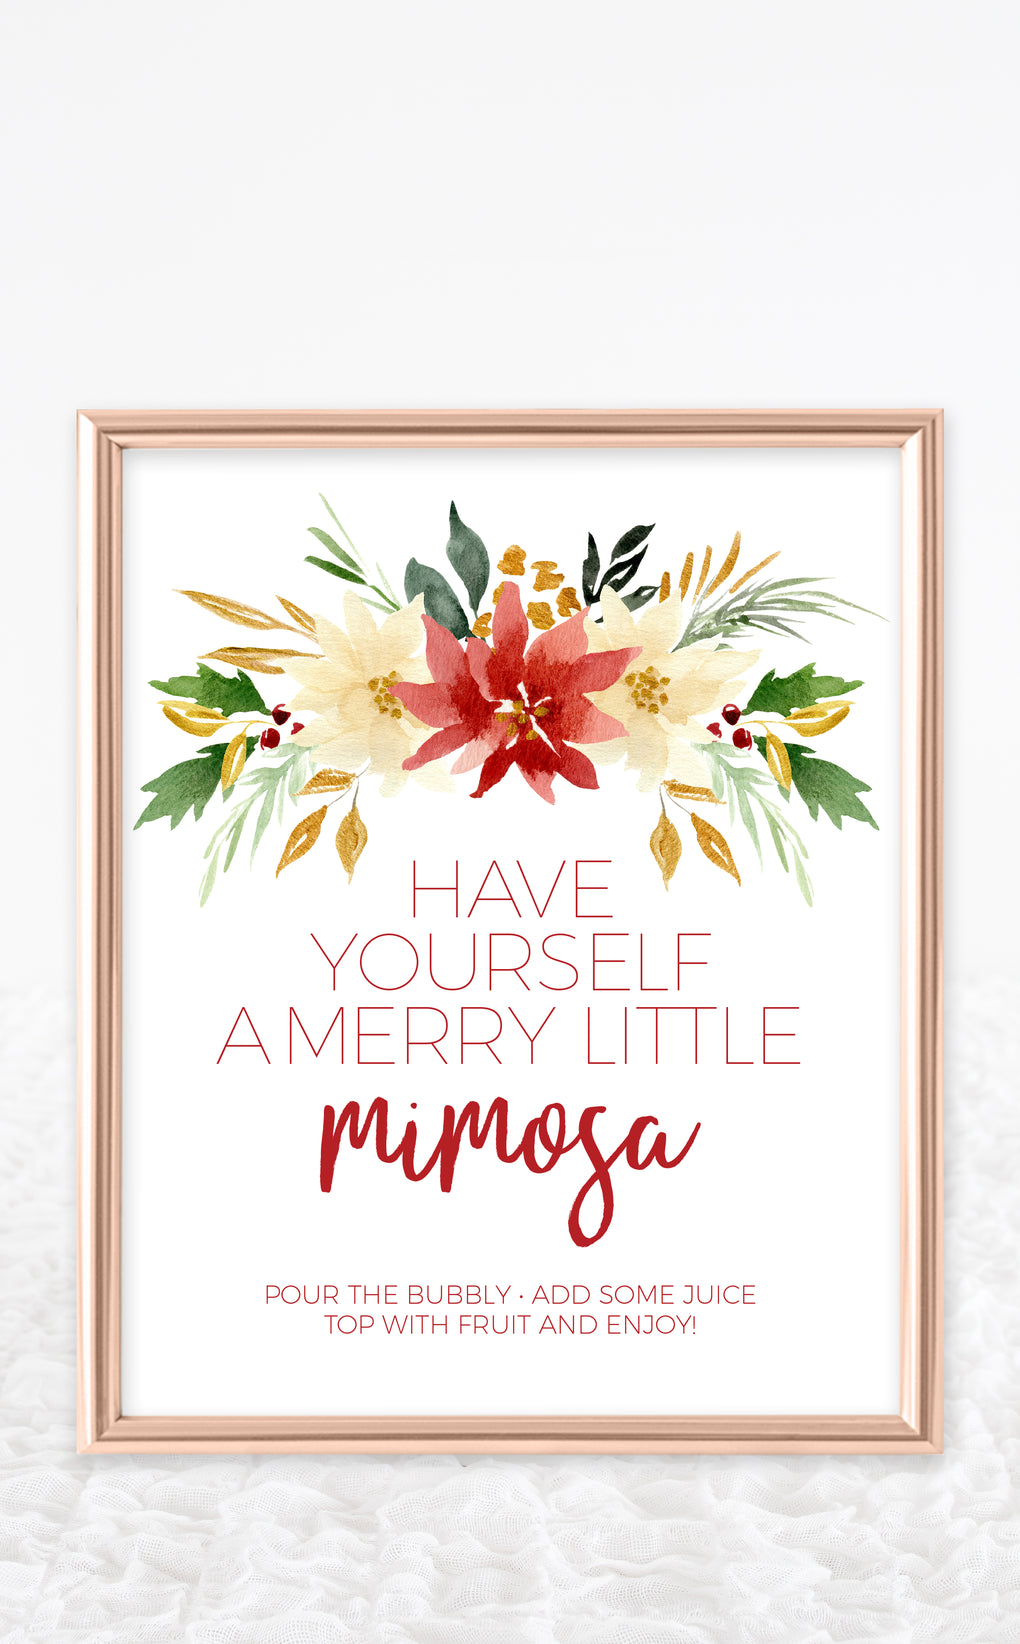 Christmas mimosa bar sign with red and white poinsettia bouquet